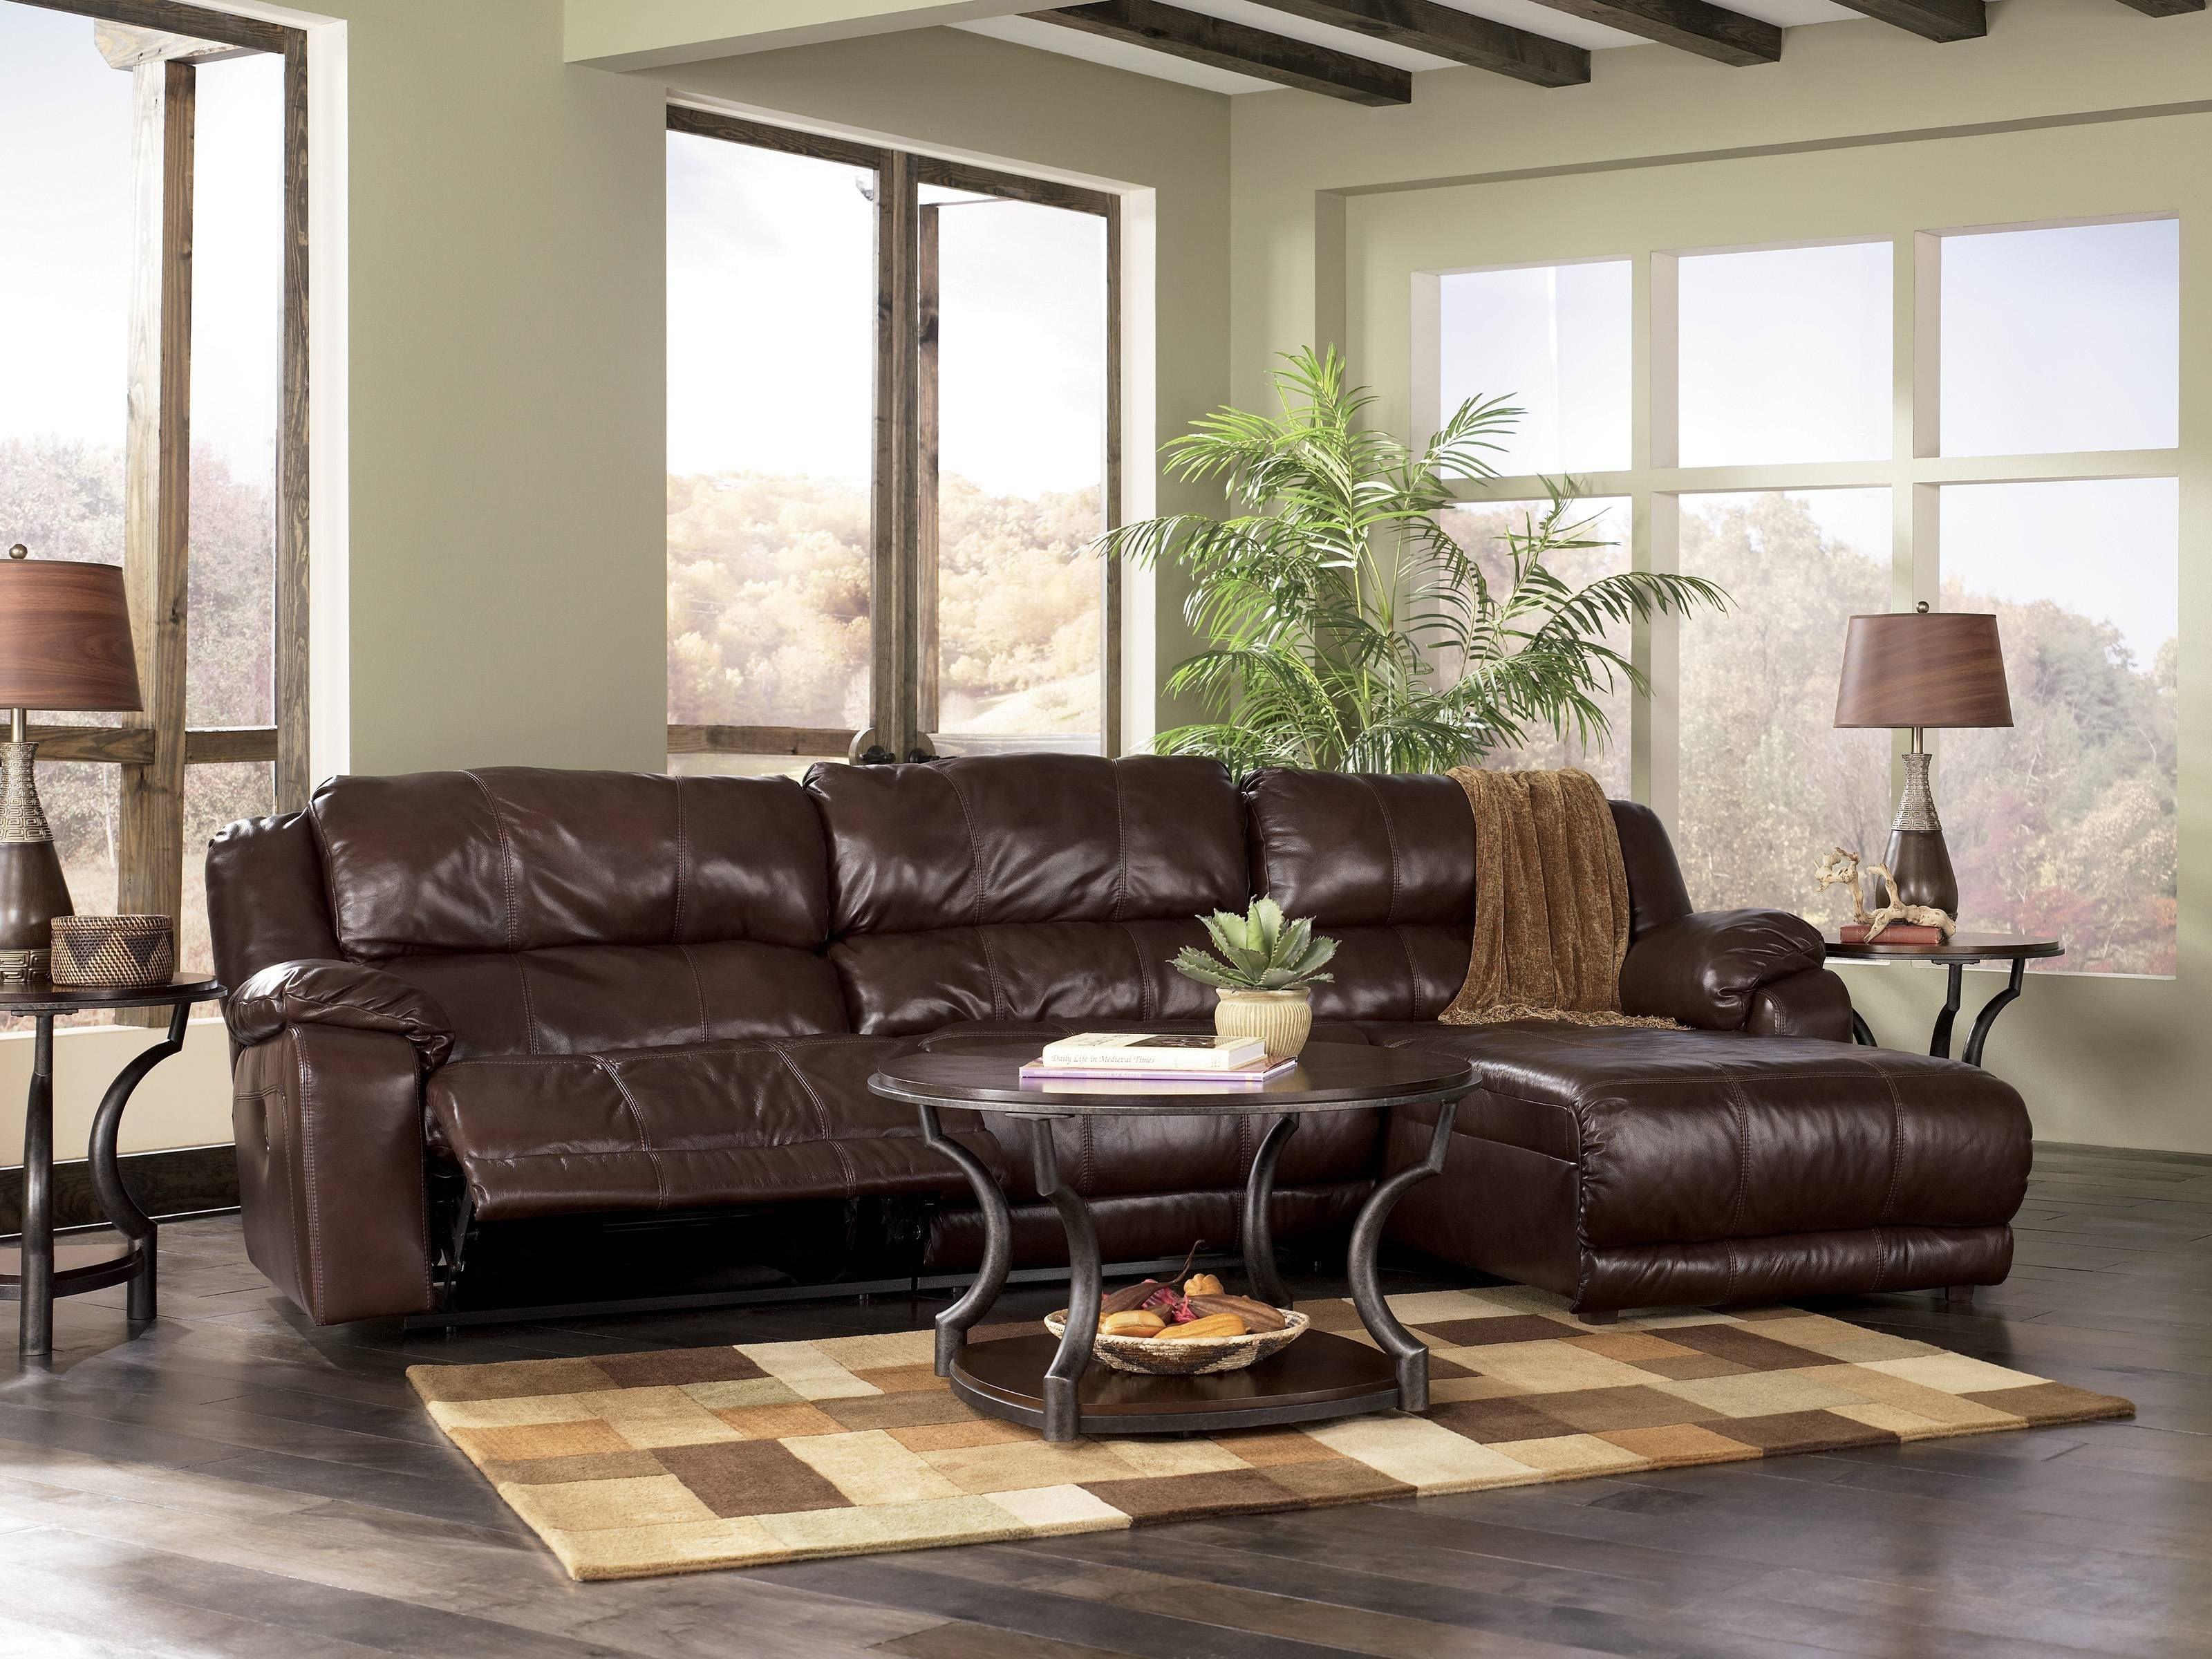 Sectional Sofas With Recliners | Johnson Leather Sofa With Recliner with Johnson City Tn Sectional Sofas (Image 8 of 10)